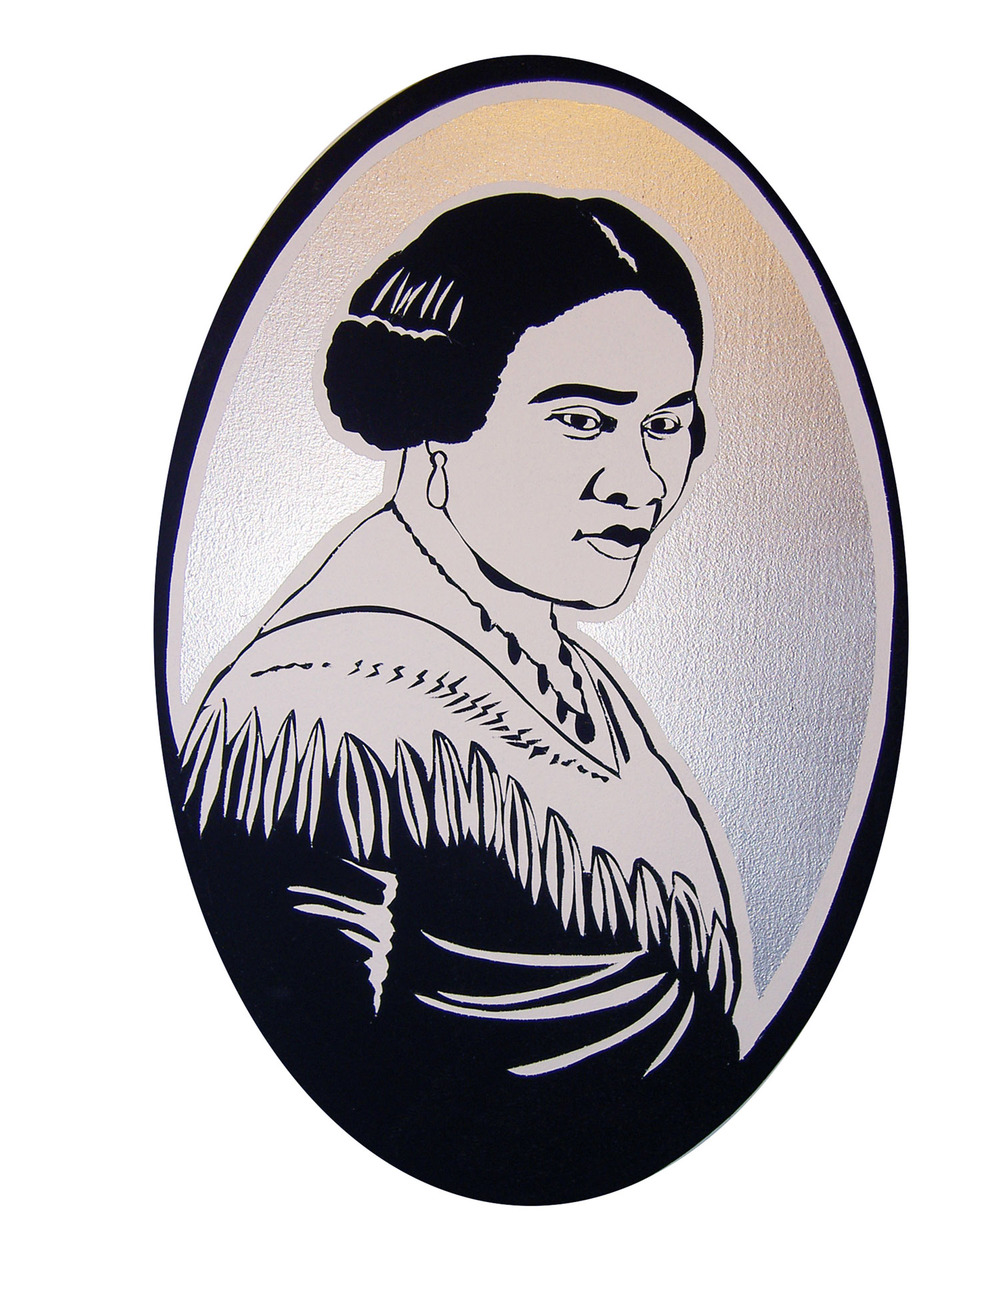 madame cj walker.jpg